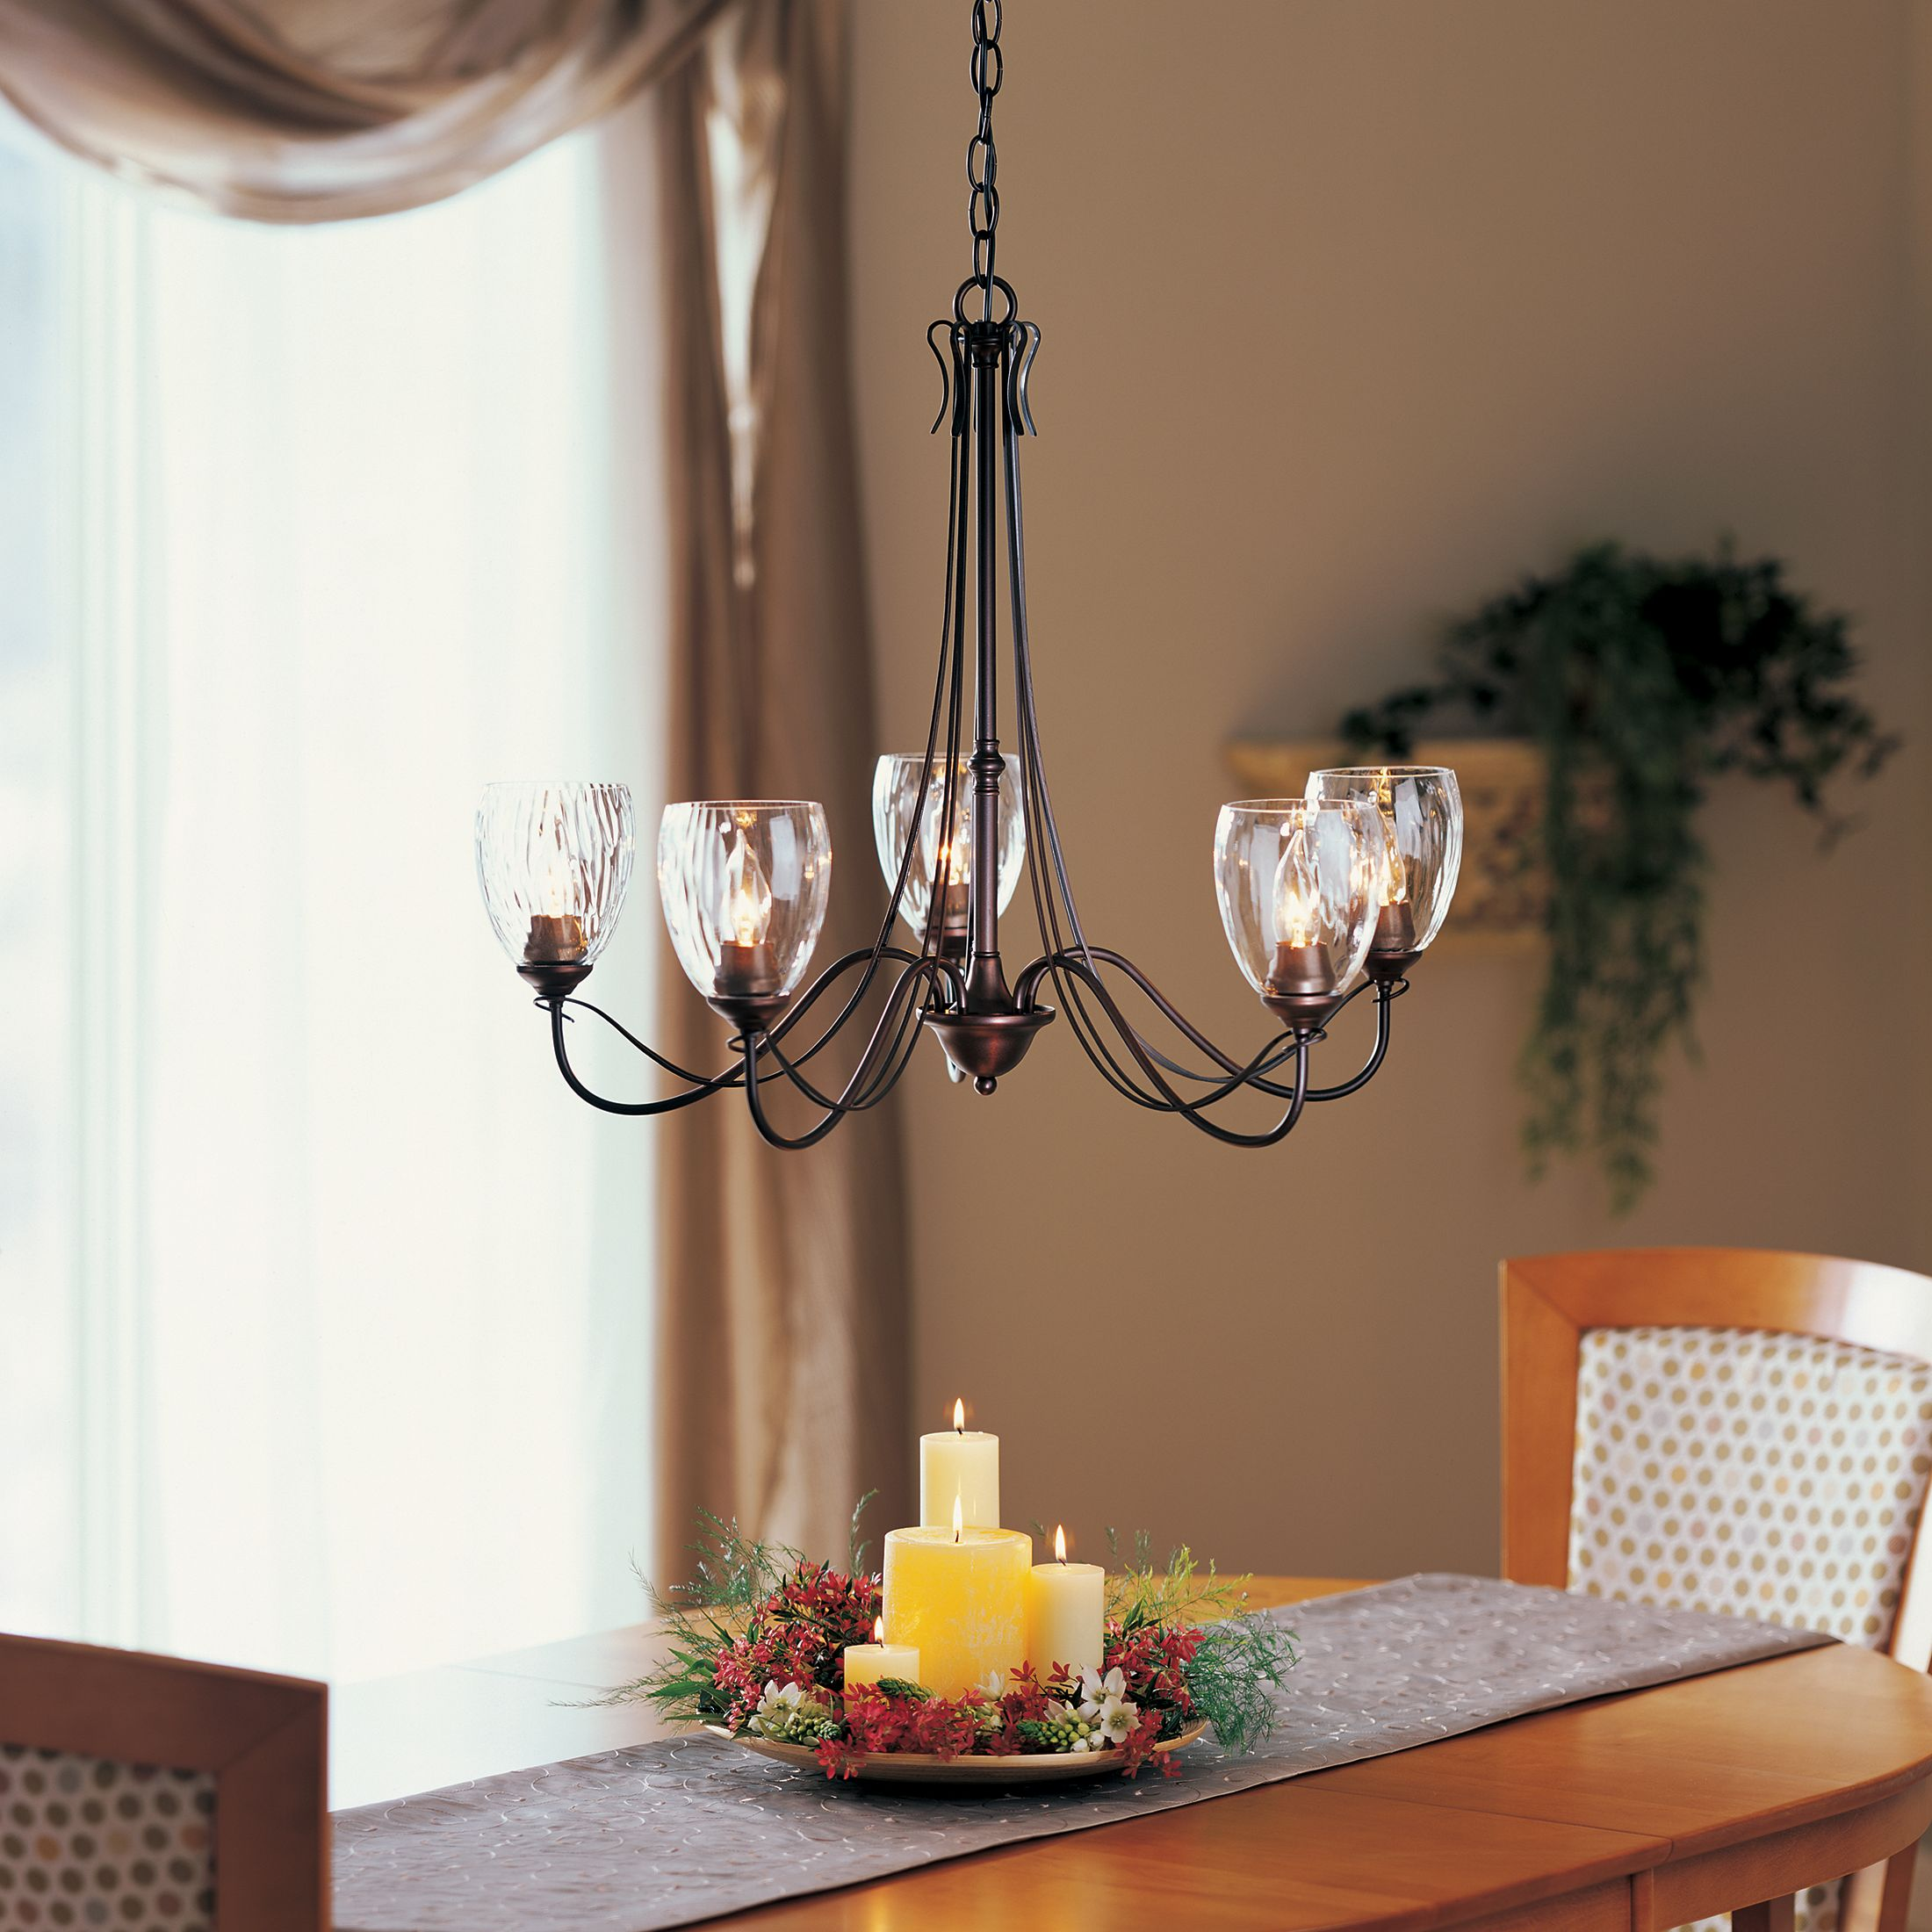 Hubbardton Forge Double Cirque Large: Hubbardton Forge Chandeliers